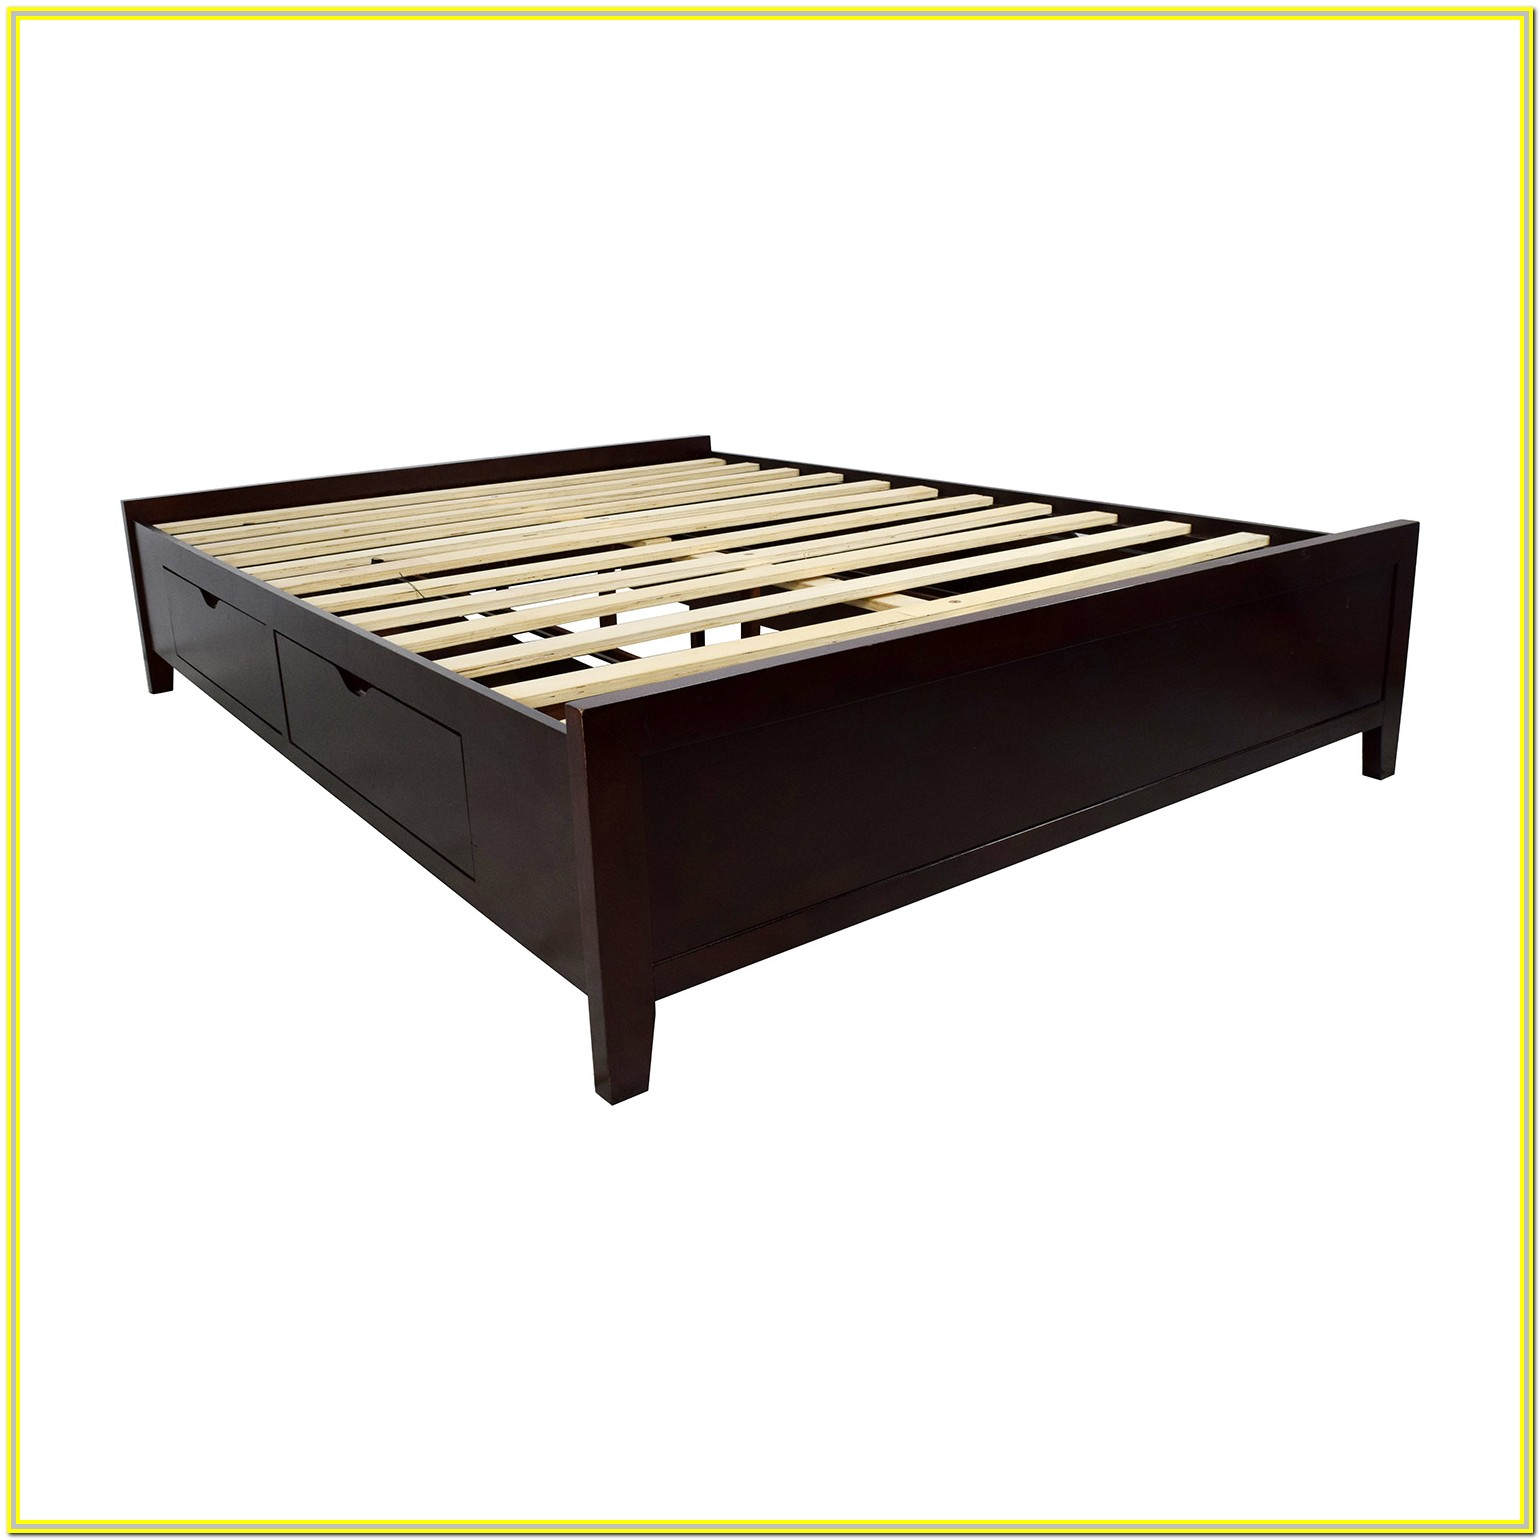 Wood Queen Bed Frame Dimensions